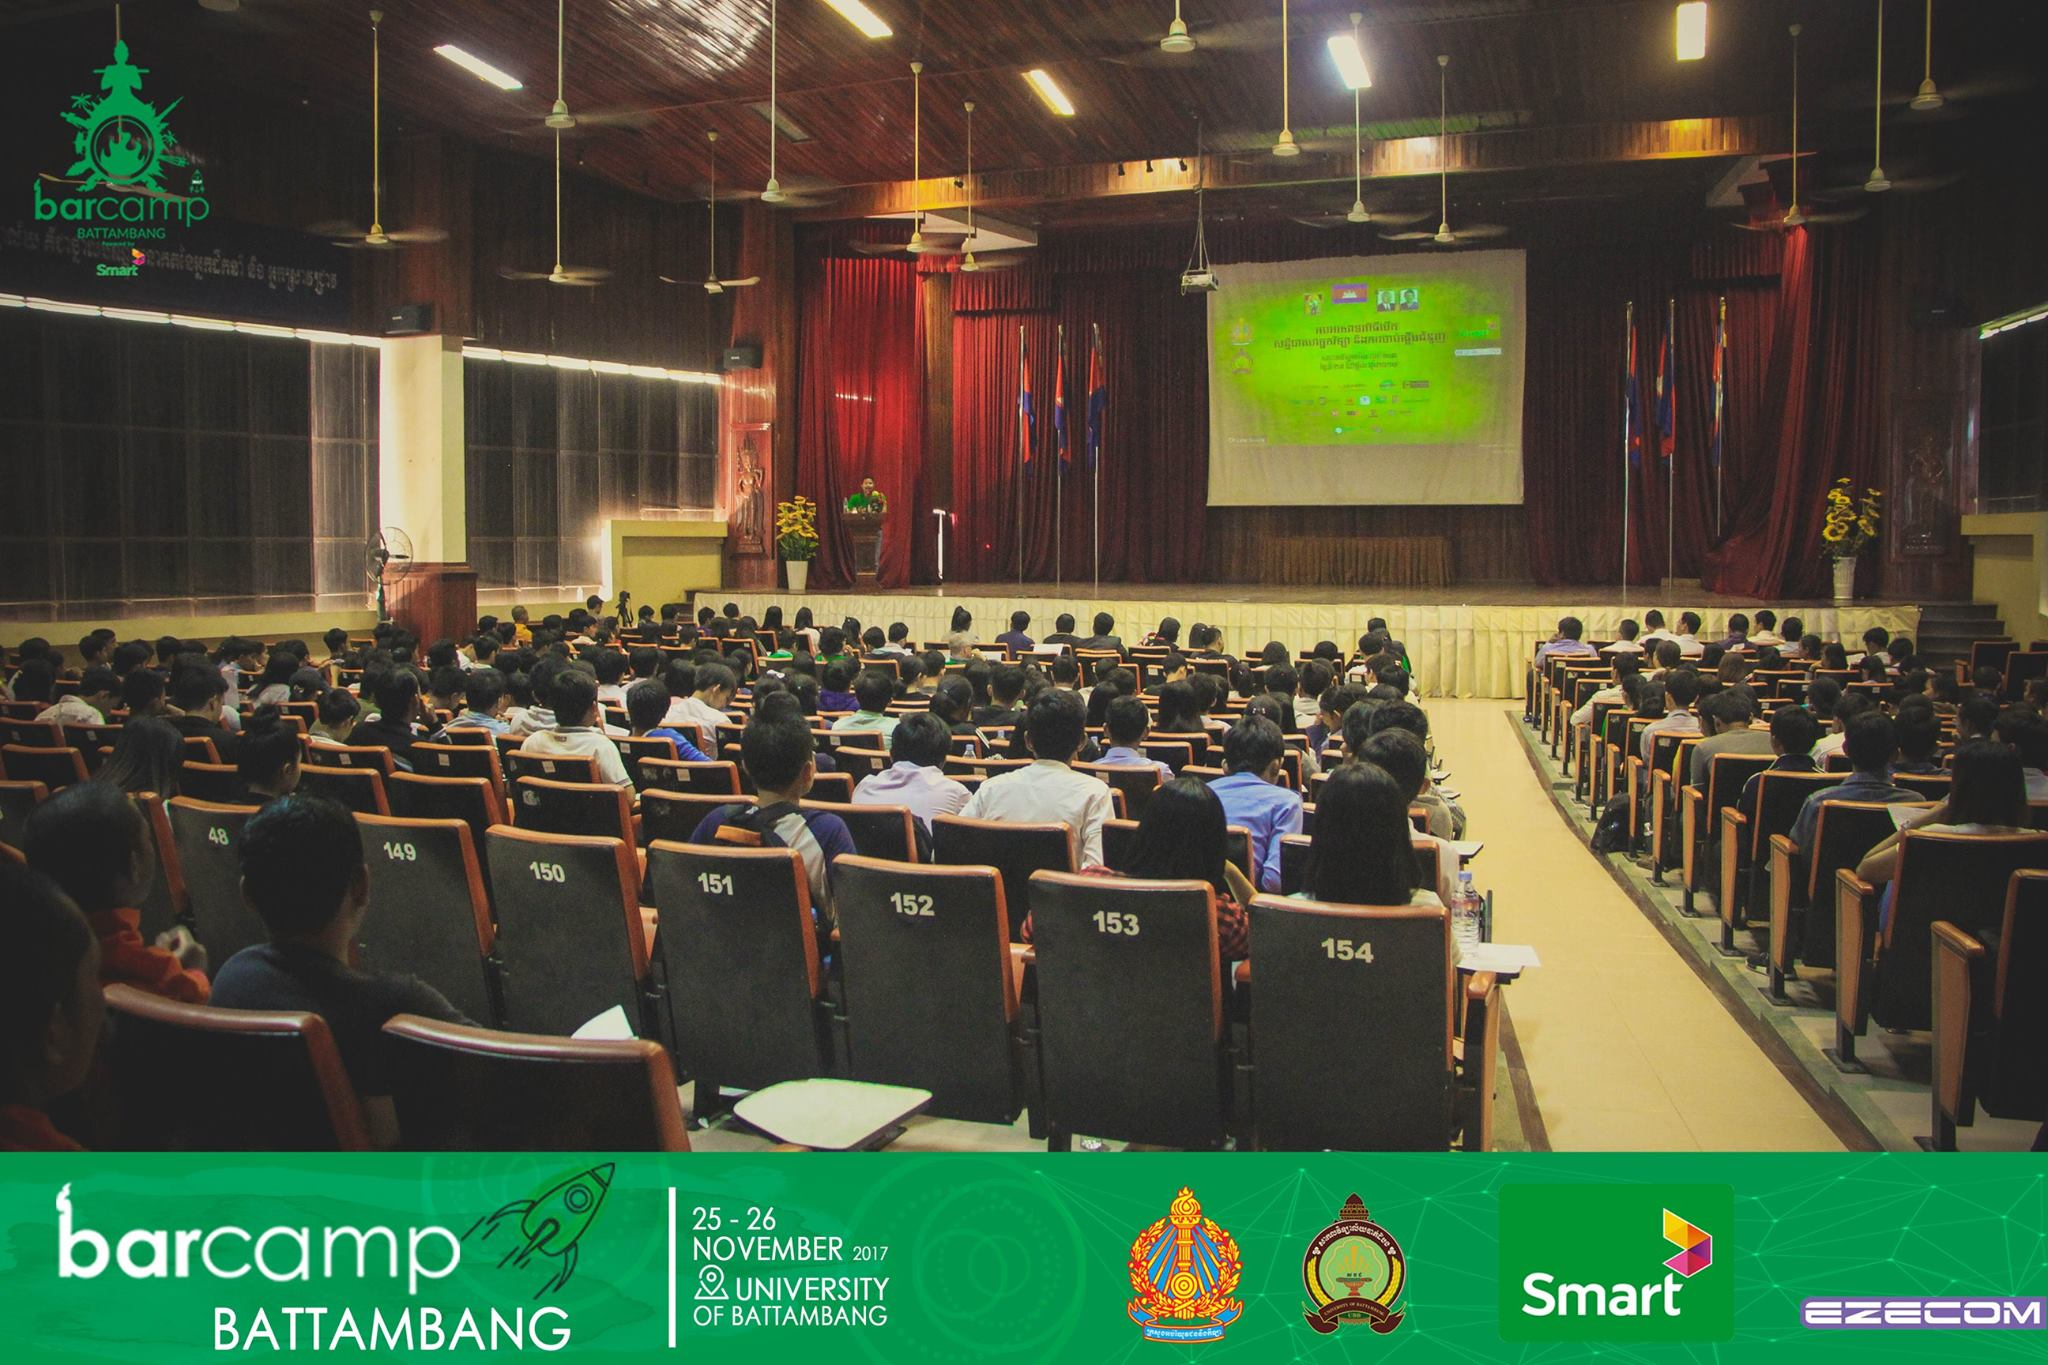 This year's BarCamp Battambang saw a multitude of attendees for its power-packed course of events Photo Source: BarCamp Battambang Facebook Page